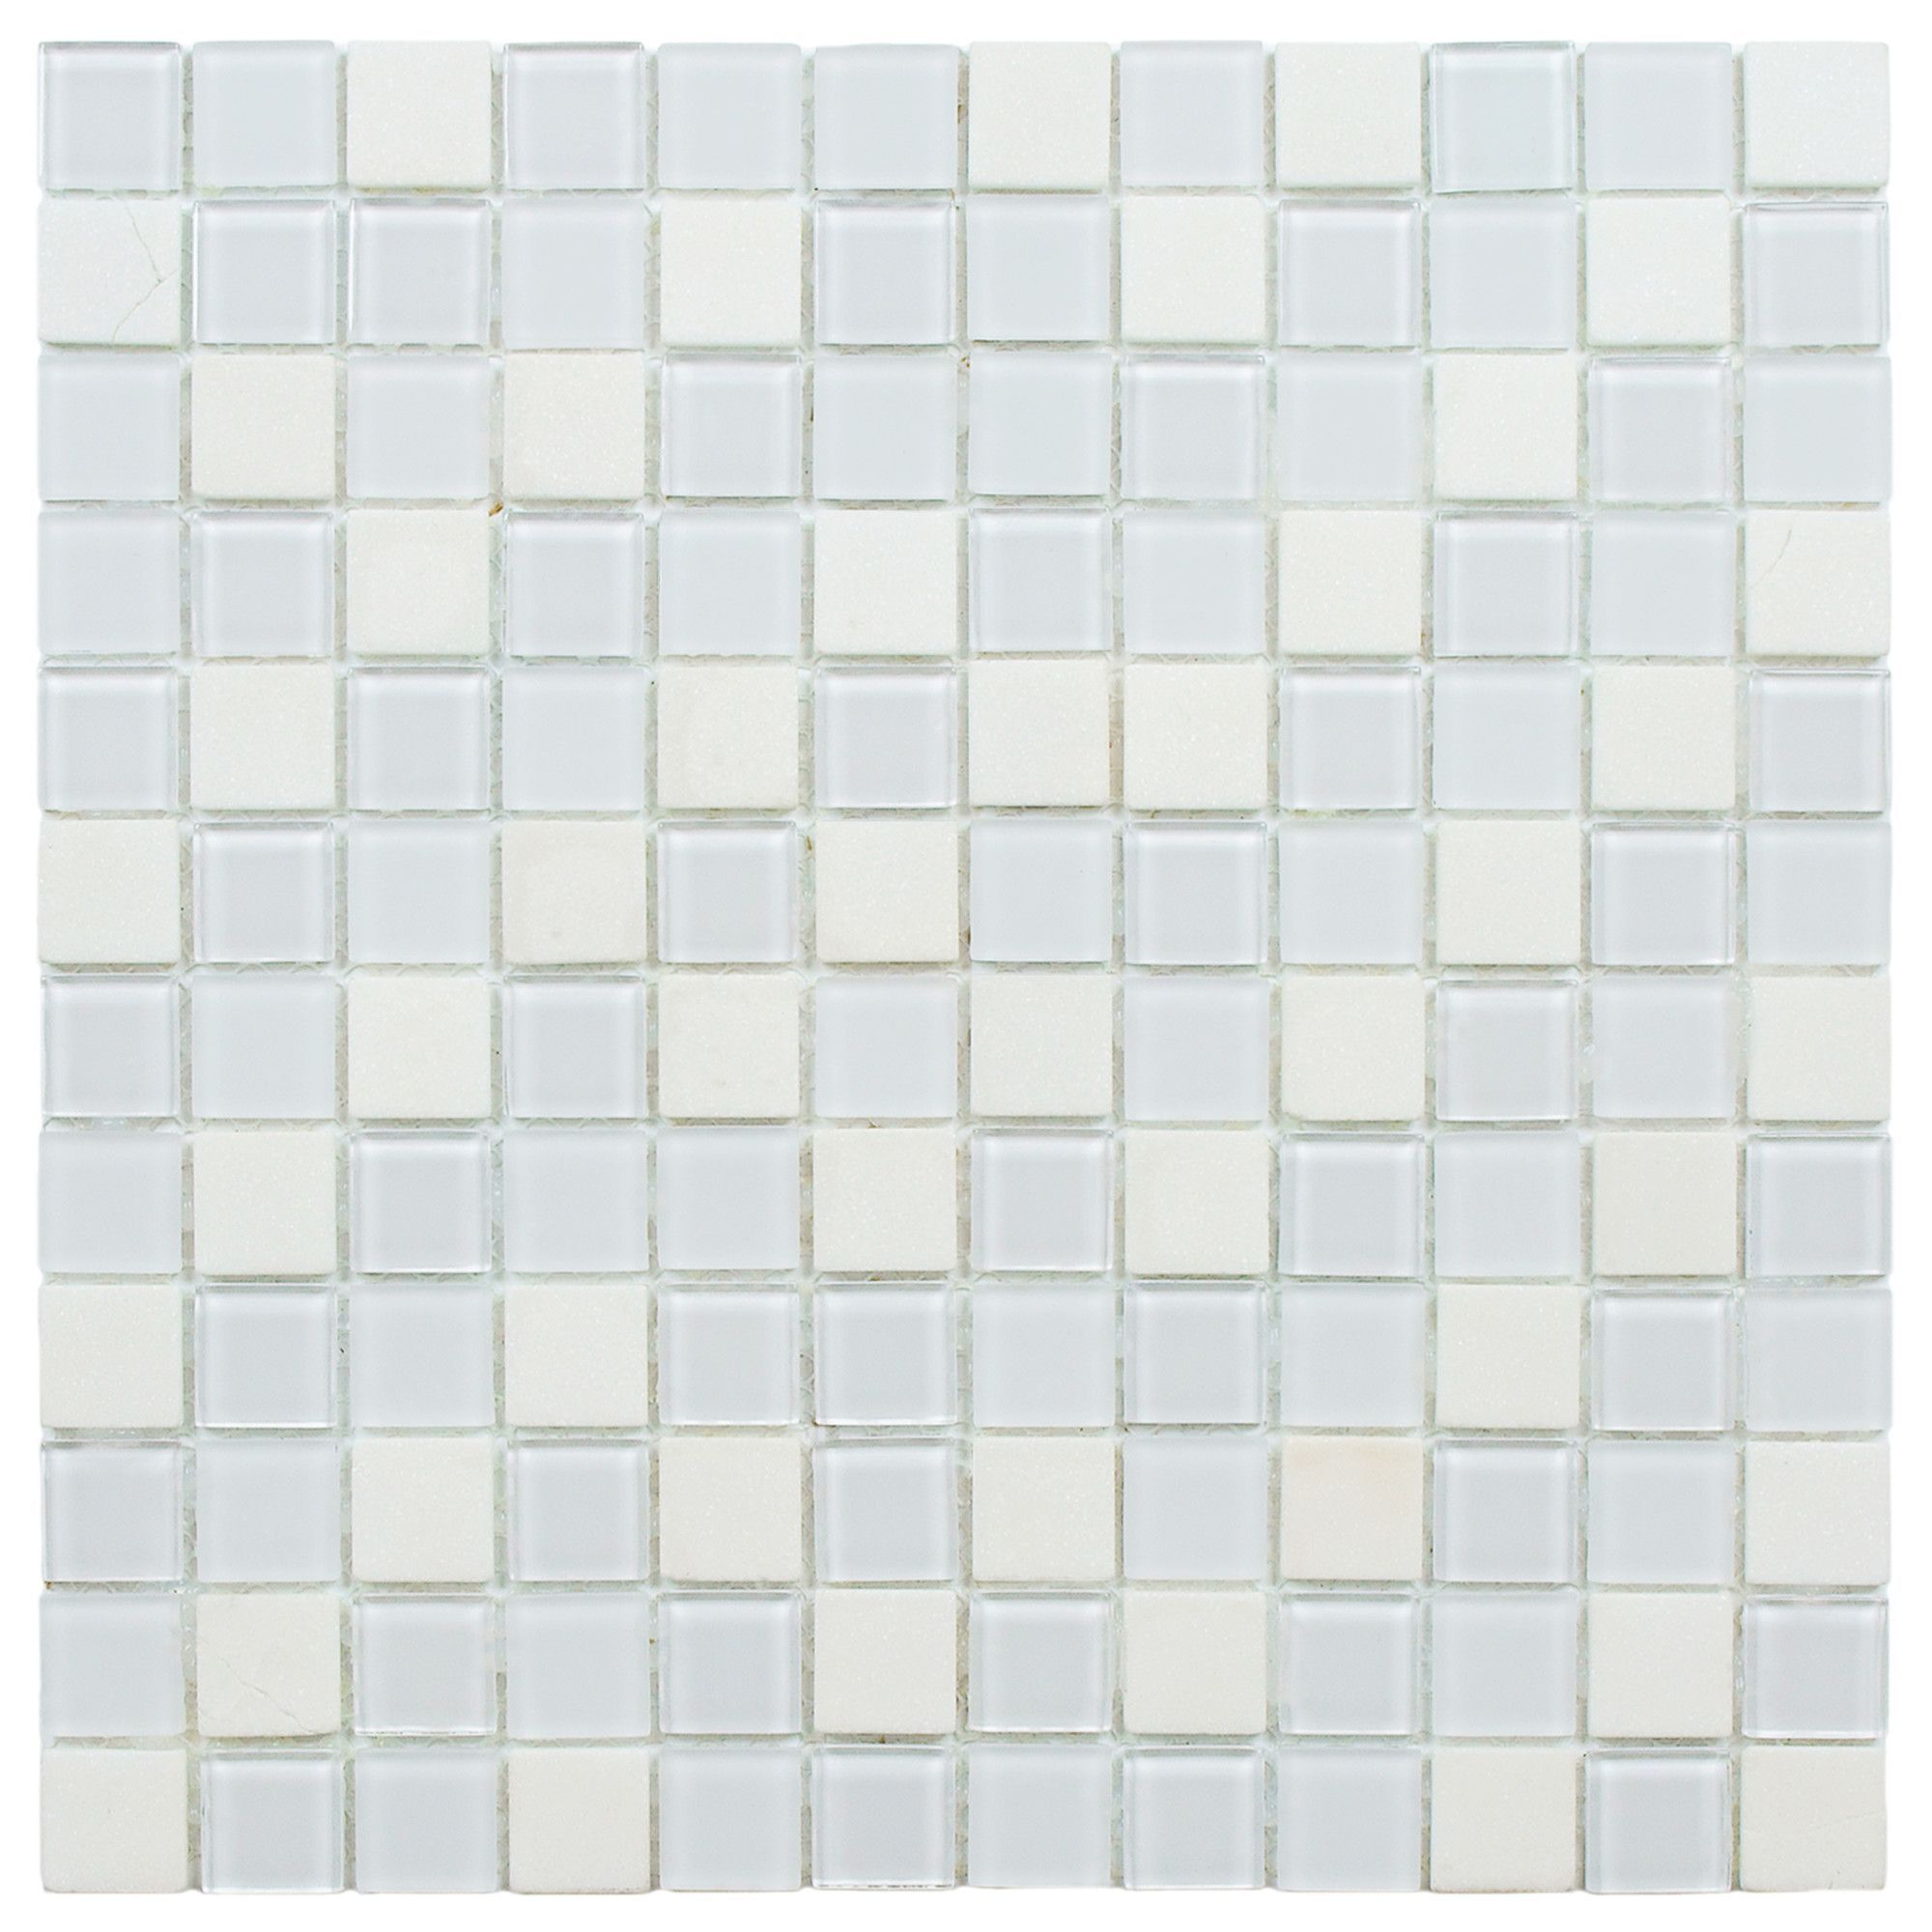 "Chroma 0 88"" x 0 88"" Glass and Natural Stone Mosaic Tile in White"